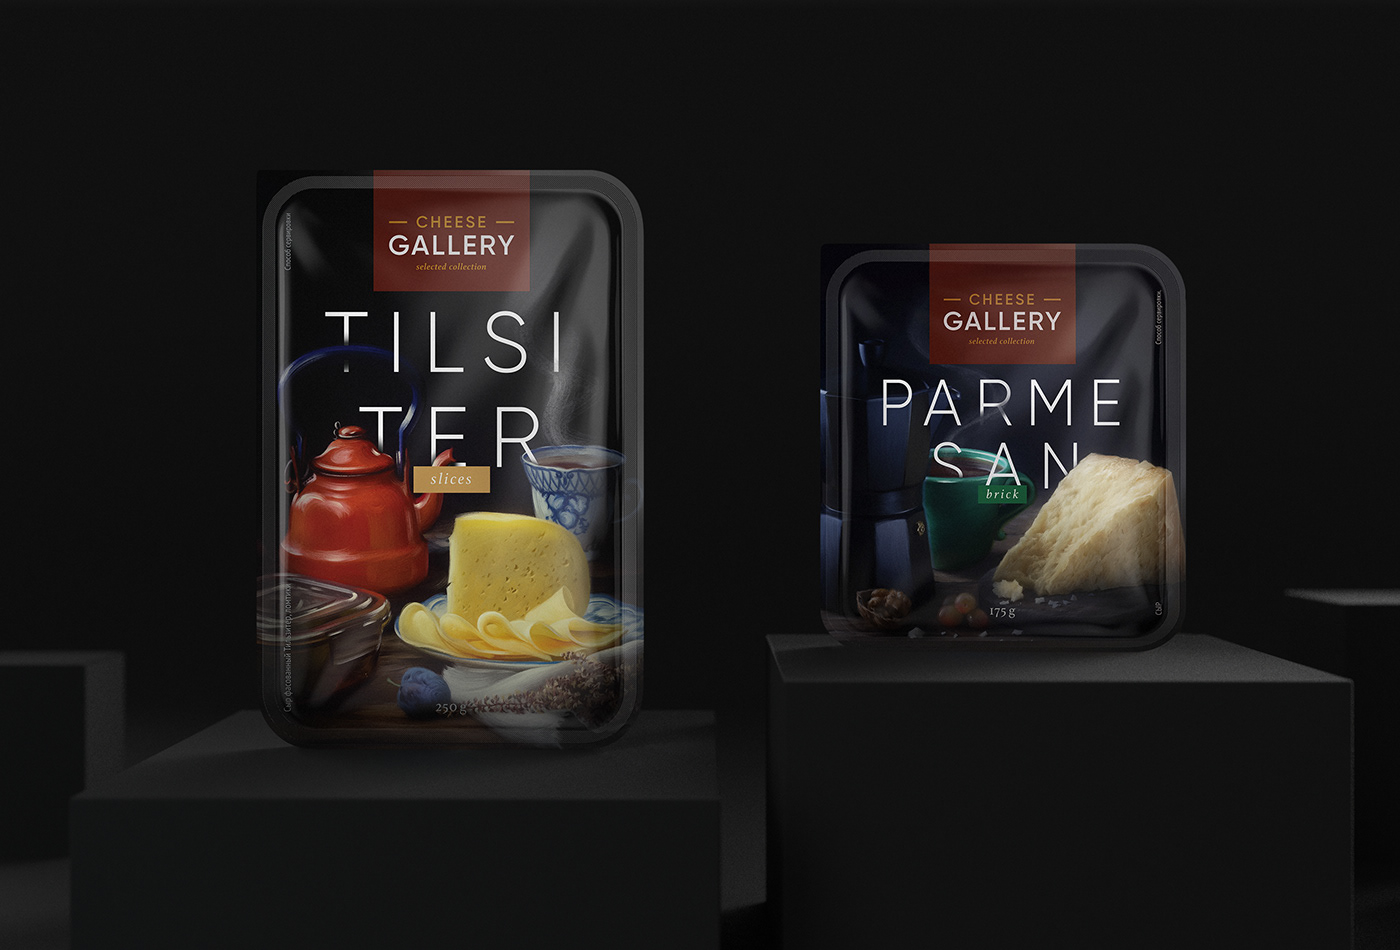 Cheese retouching  parmesan cheddar gallery Collection cheese gallery ПИР dutch painting